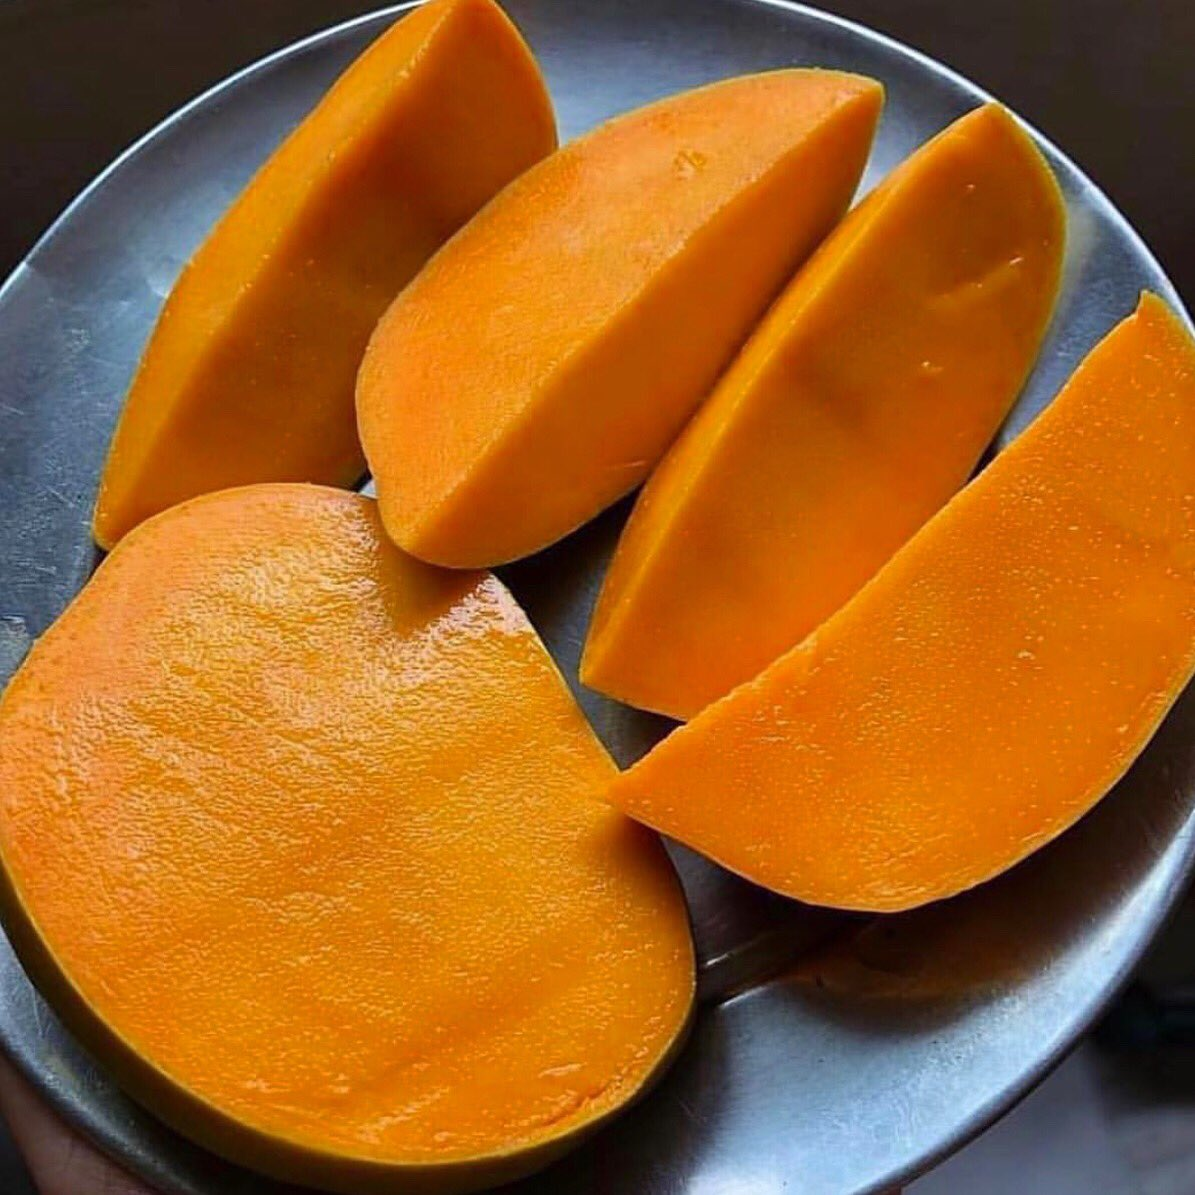 Who's ready for mango season? 😋